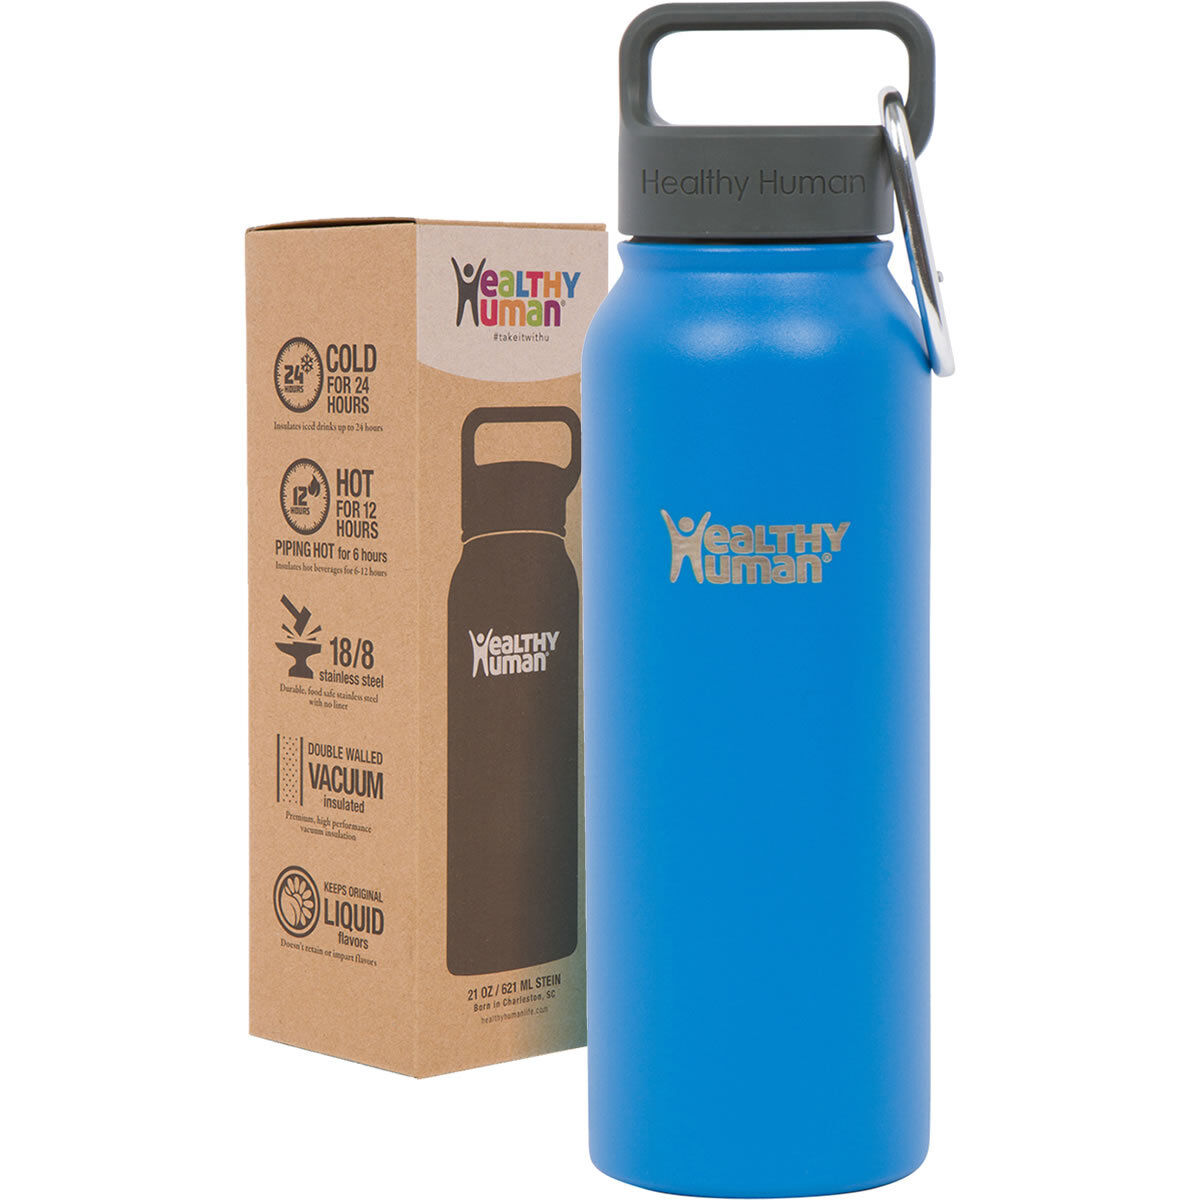 e86c75f29 Details about Healthy Human 21 oz Bahama Insulated Stainless Steel Water Bottle  Stein